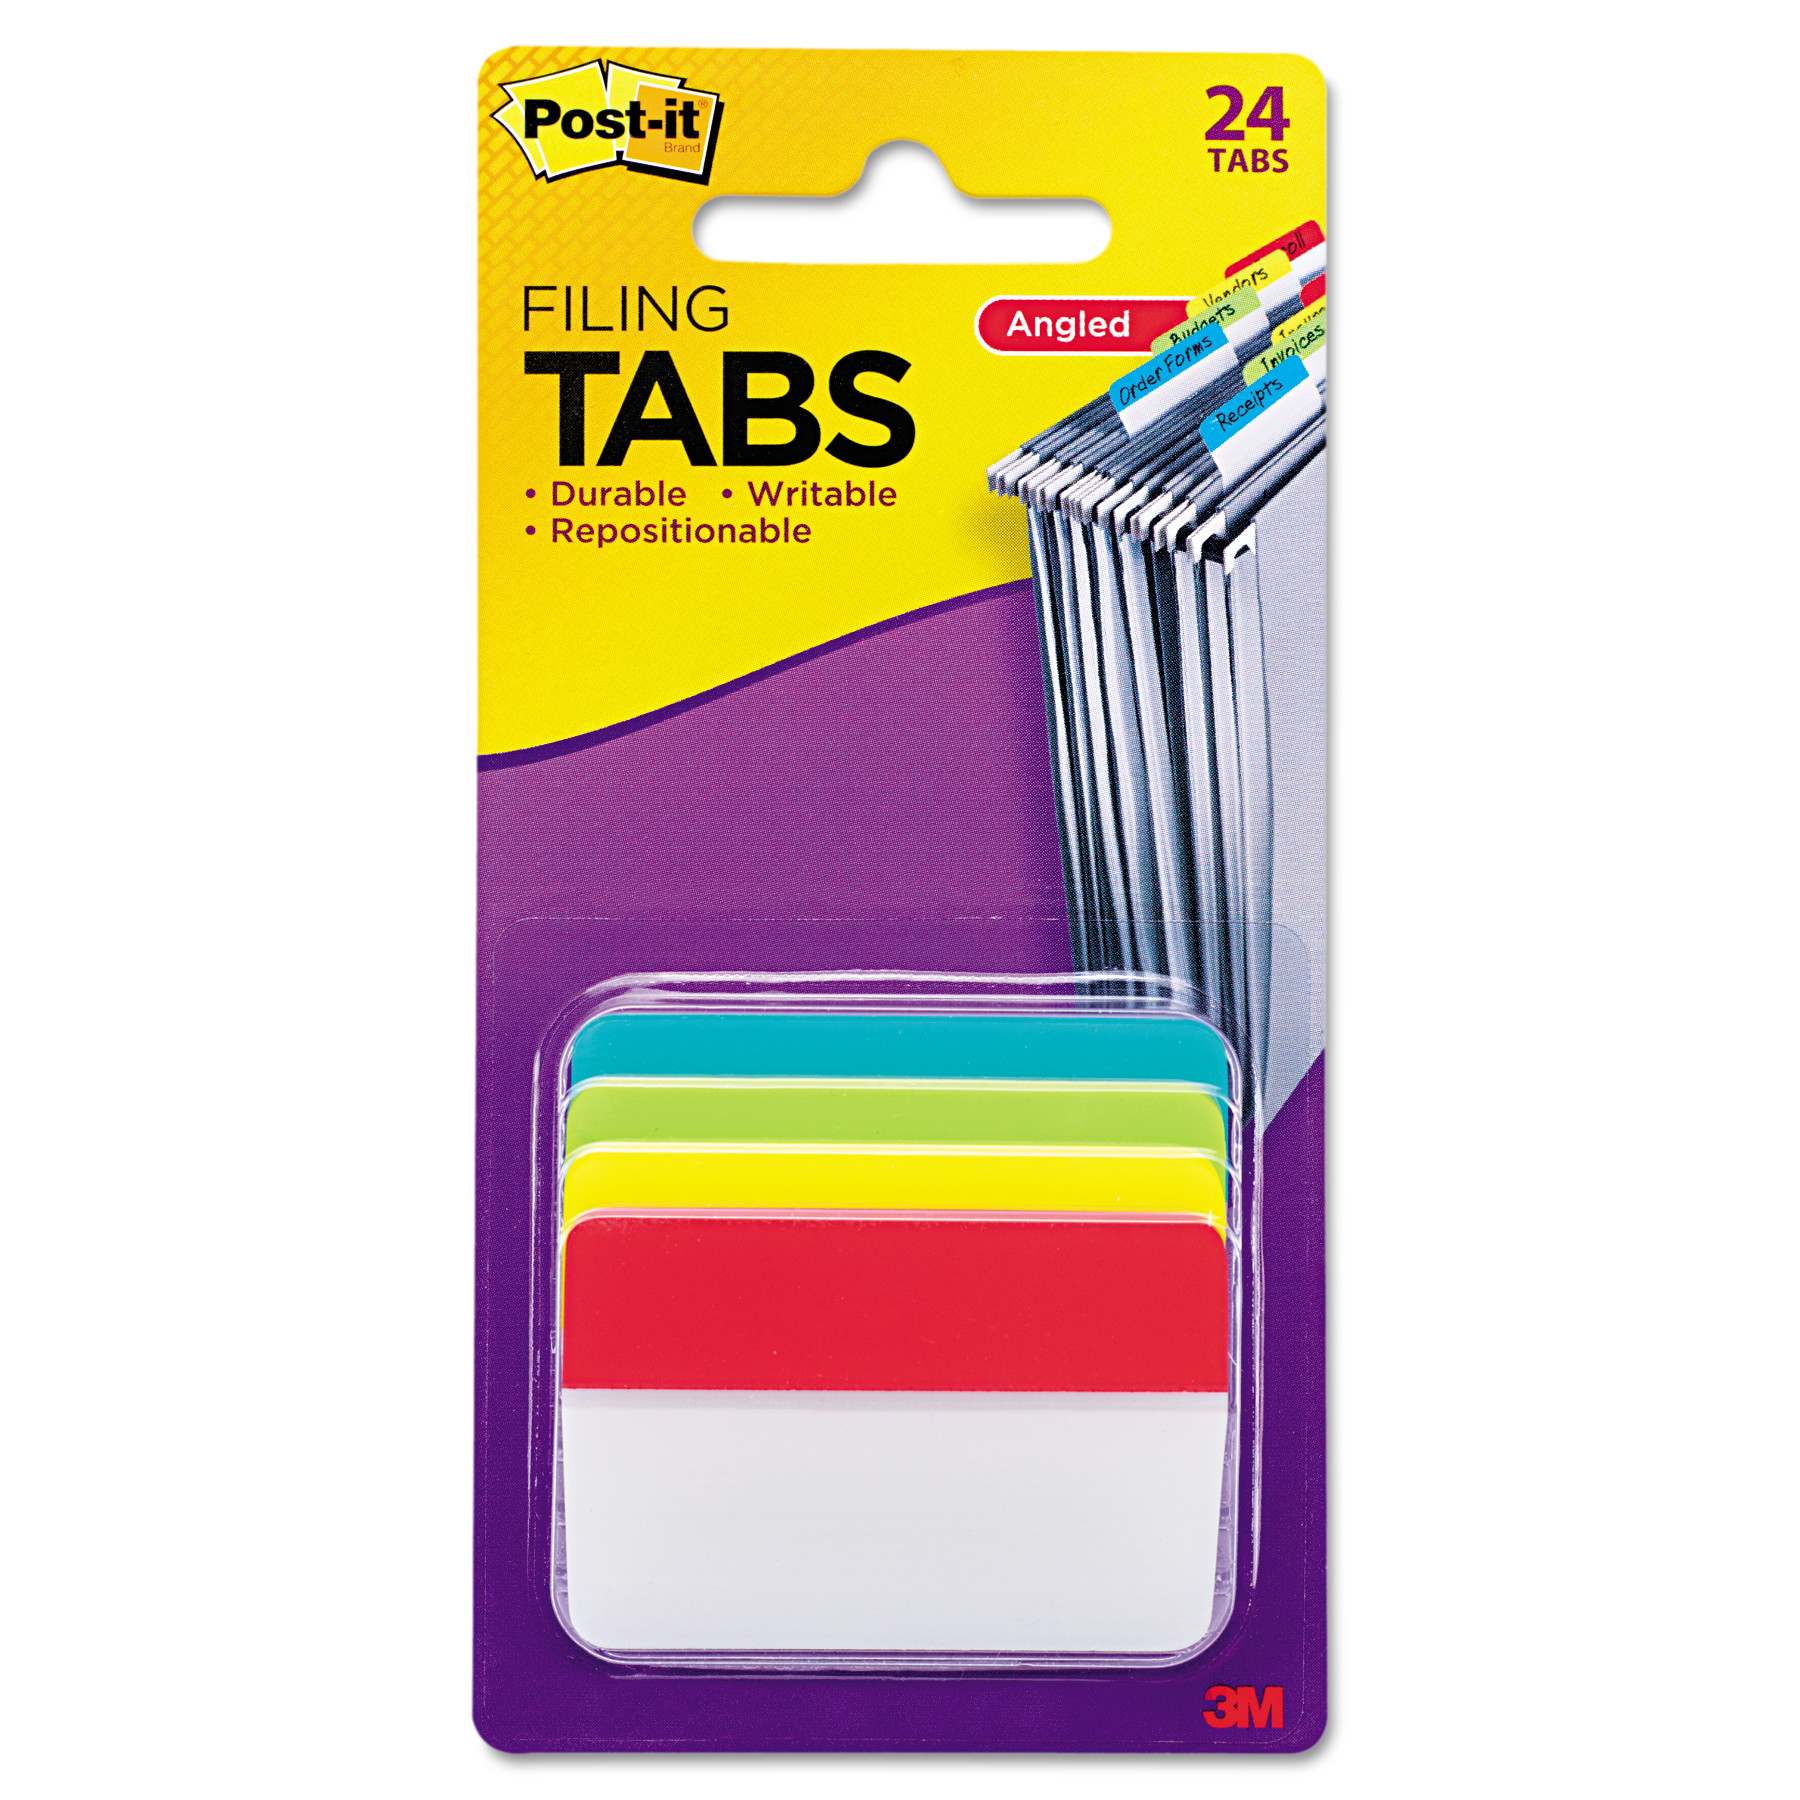 "Post-it Filing Tabs, 2"" Angled Solid, Assorted Primary Colors, 6 Tabs/Dispenser, 4 Dispensers/Pack"